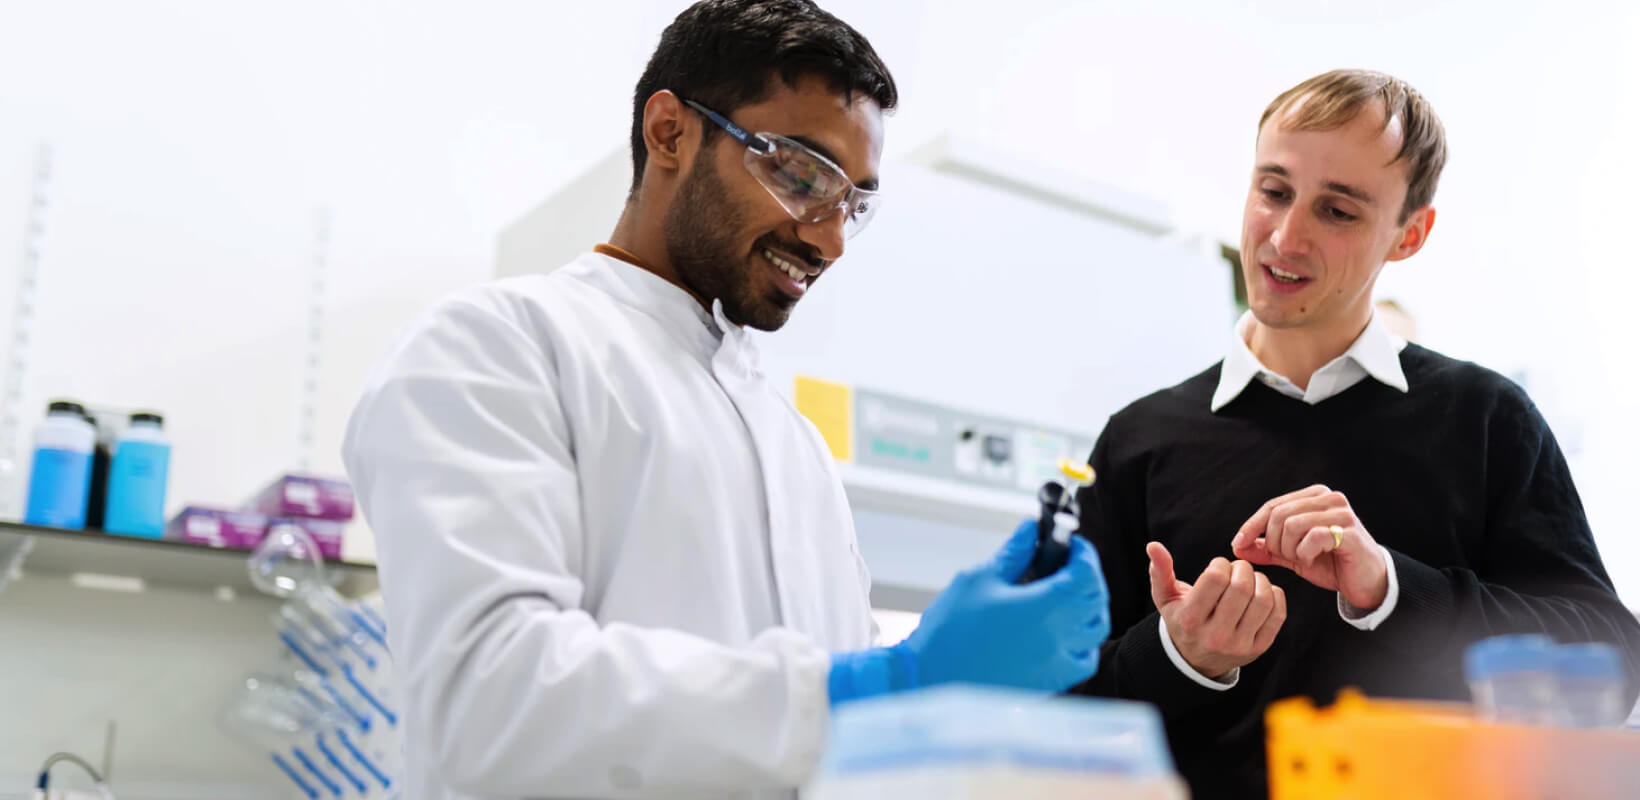 2 scientist guys trying equipments.